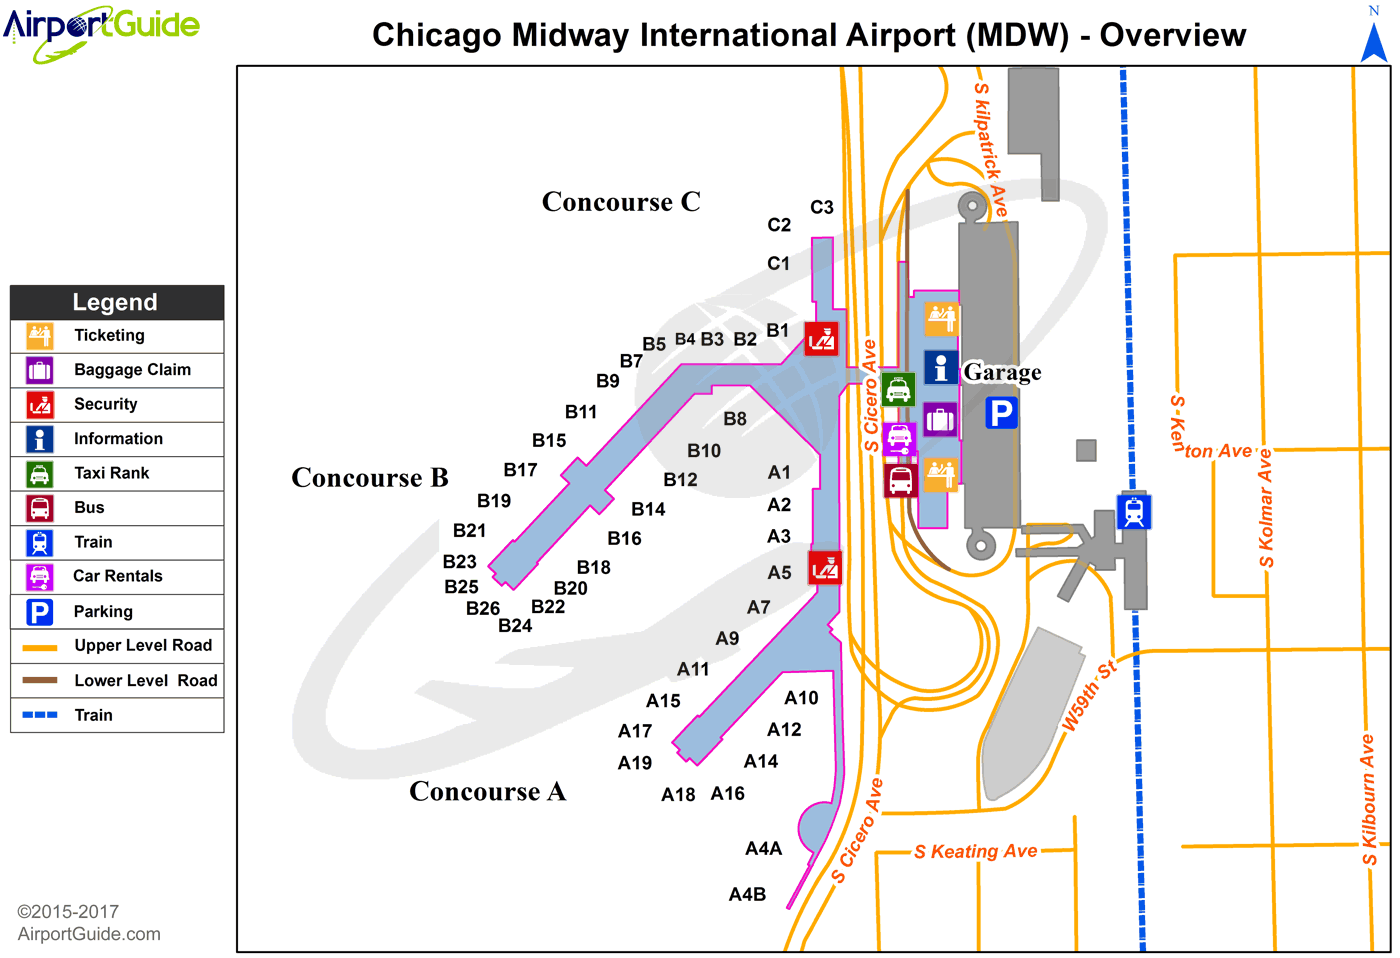 Chicago - Chicago Midway International (MDW) Airport Terminal Map - Overview